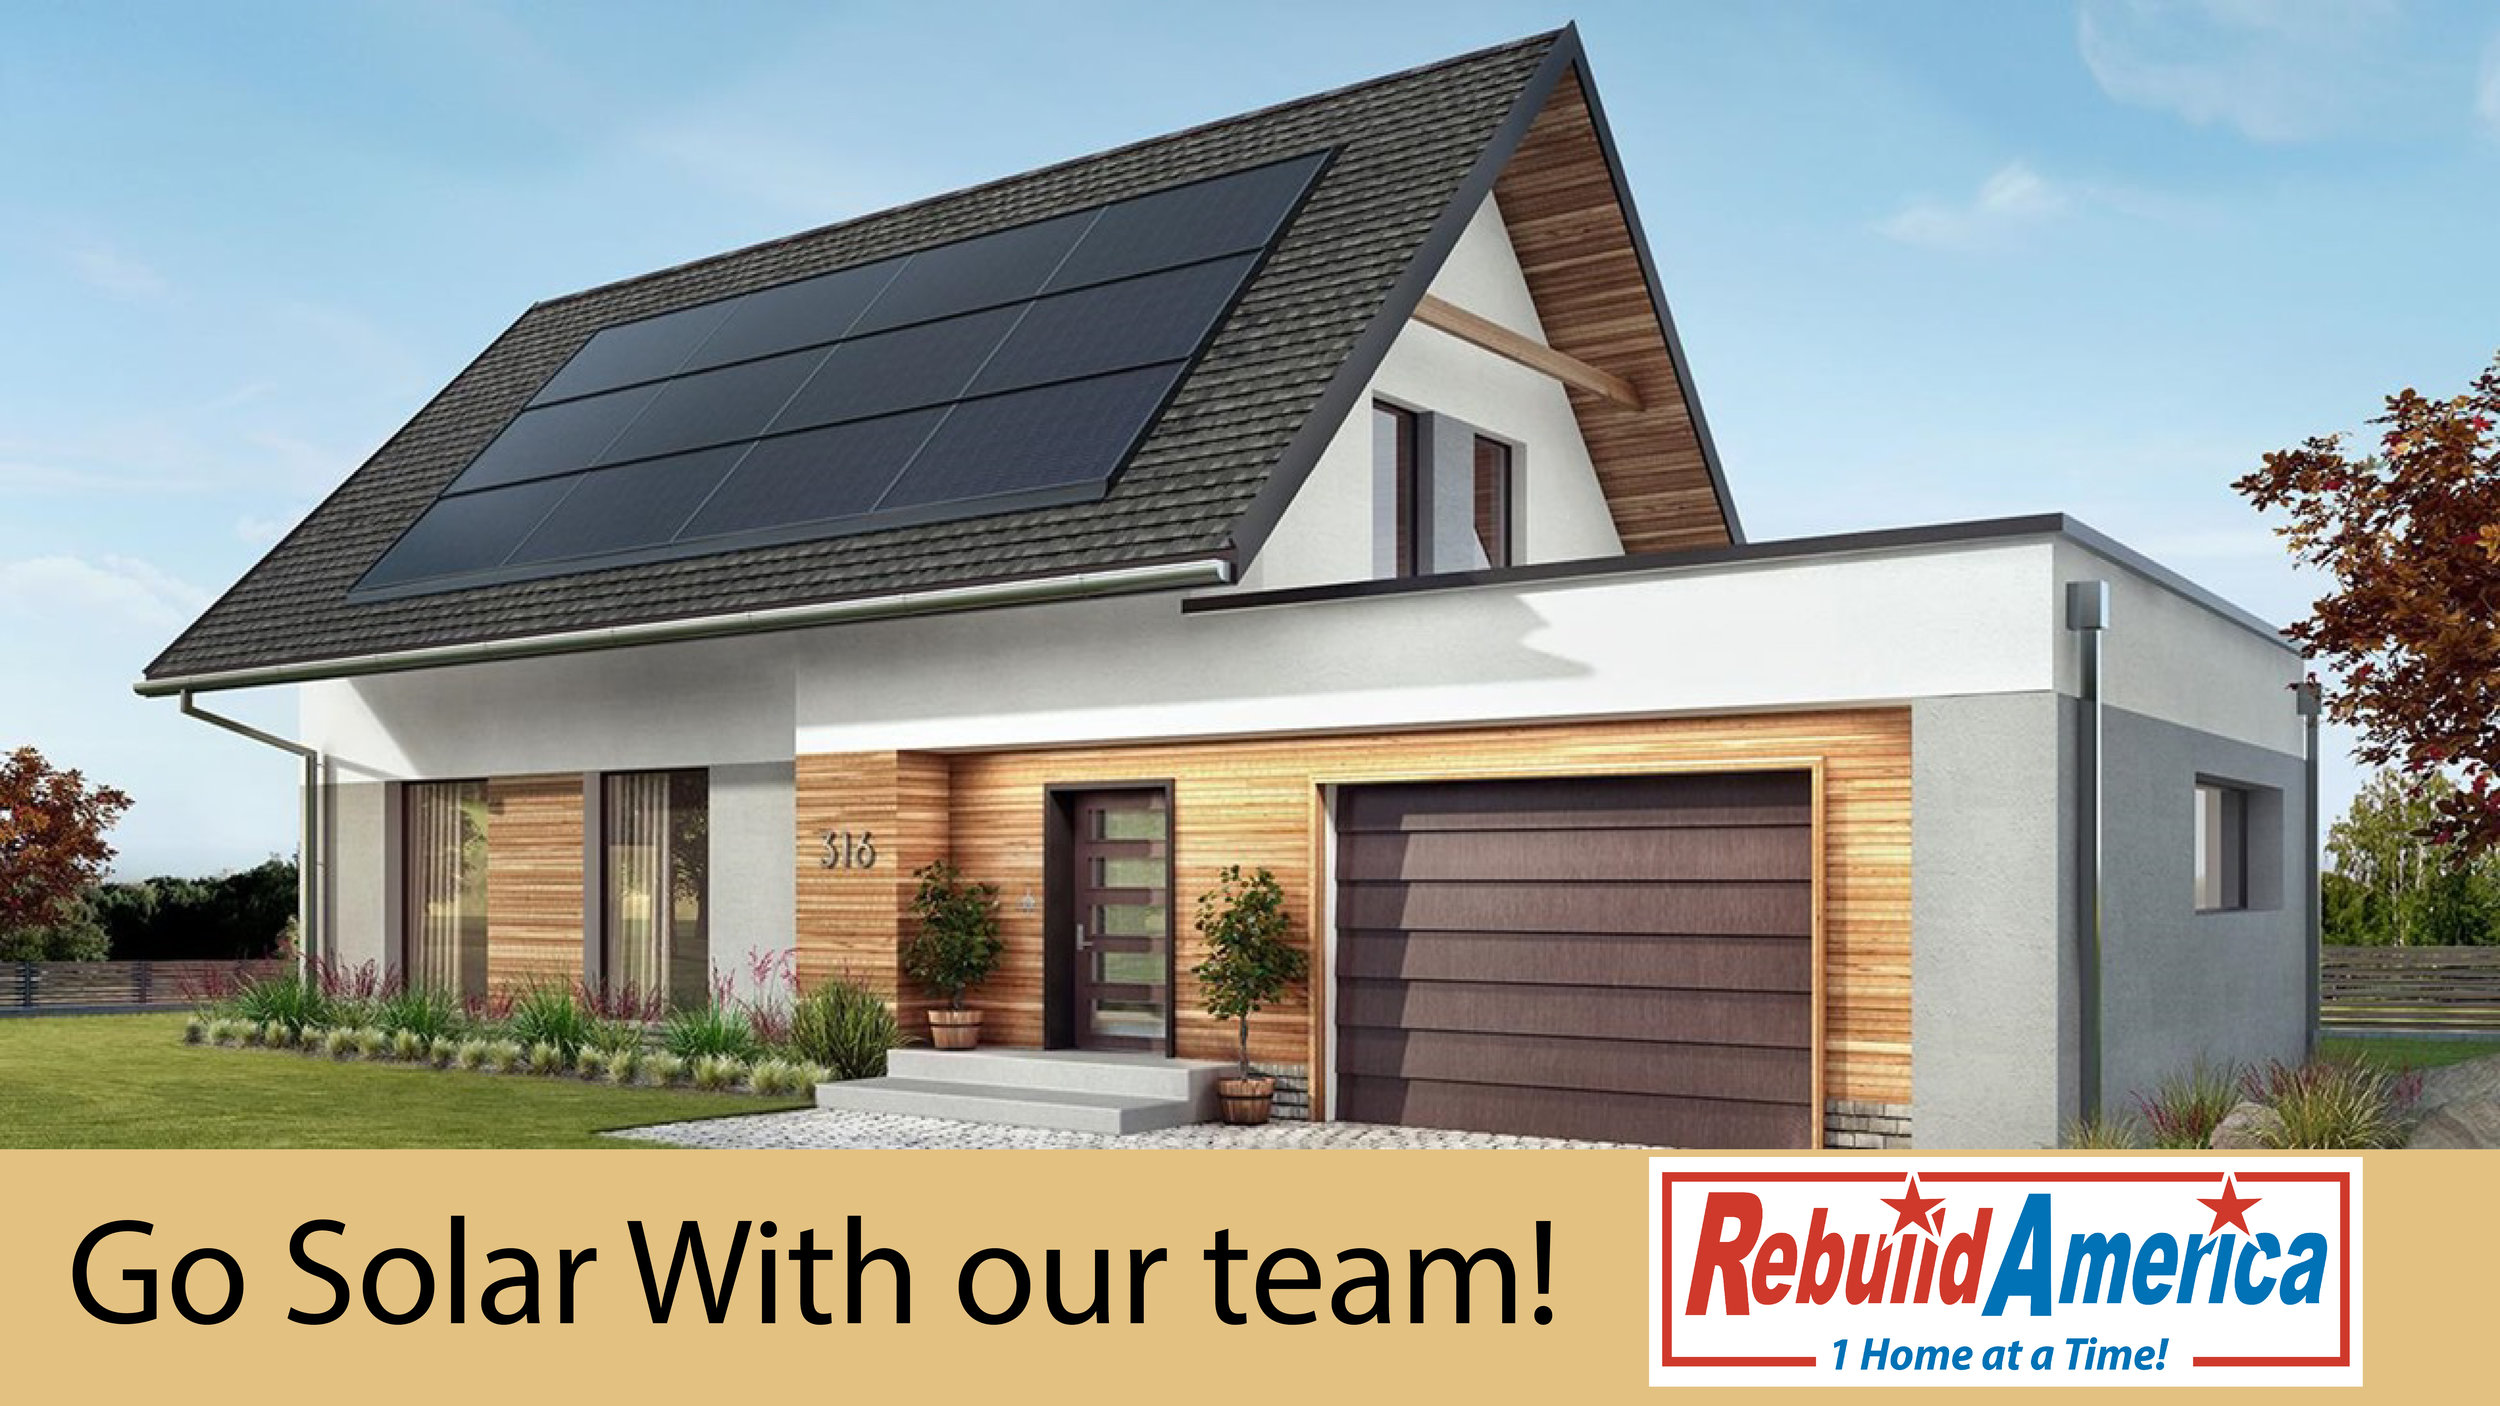 Solar House with Logo.jpg